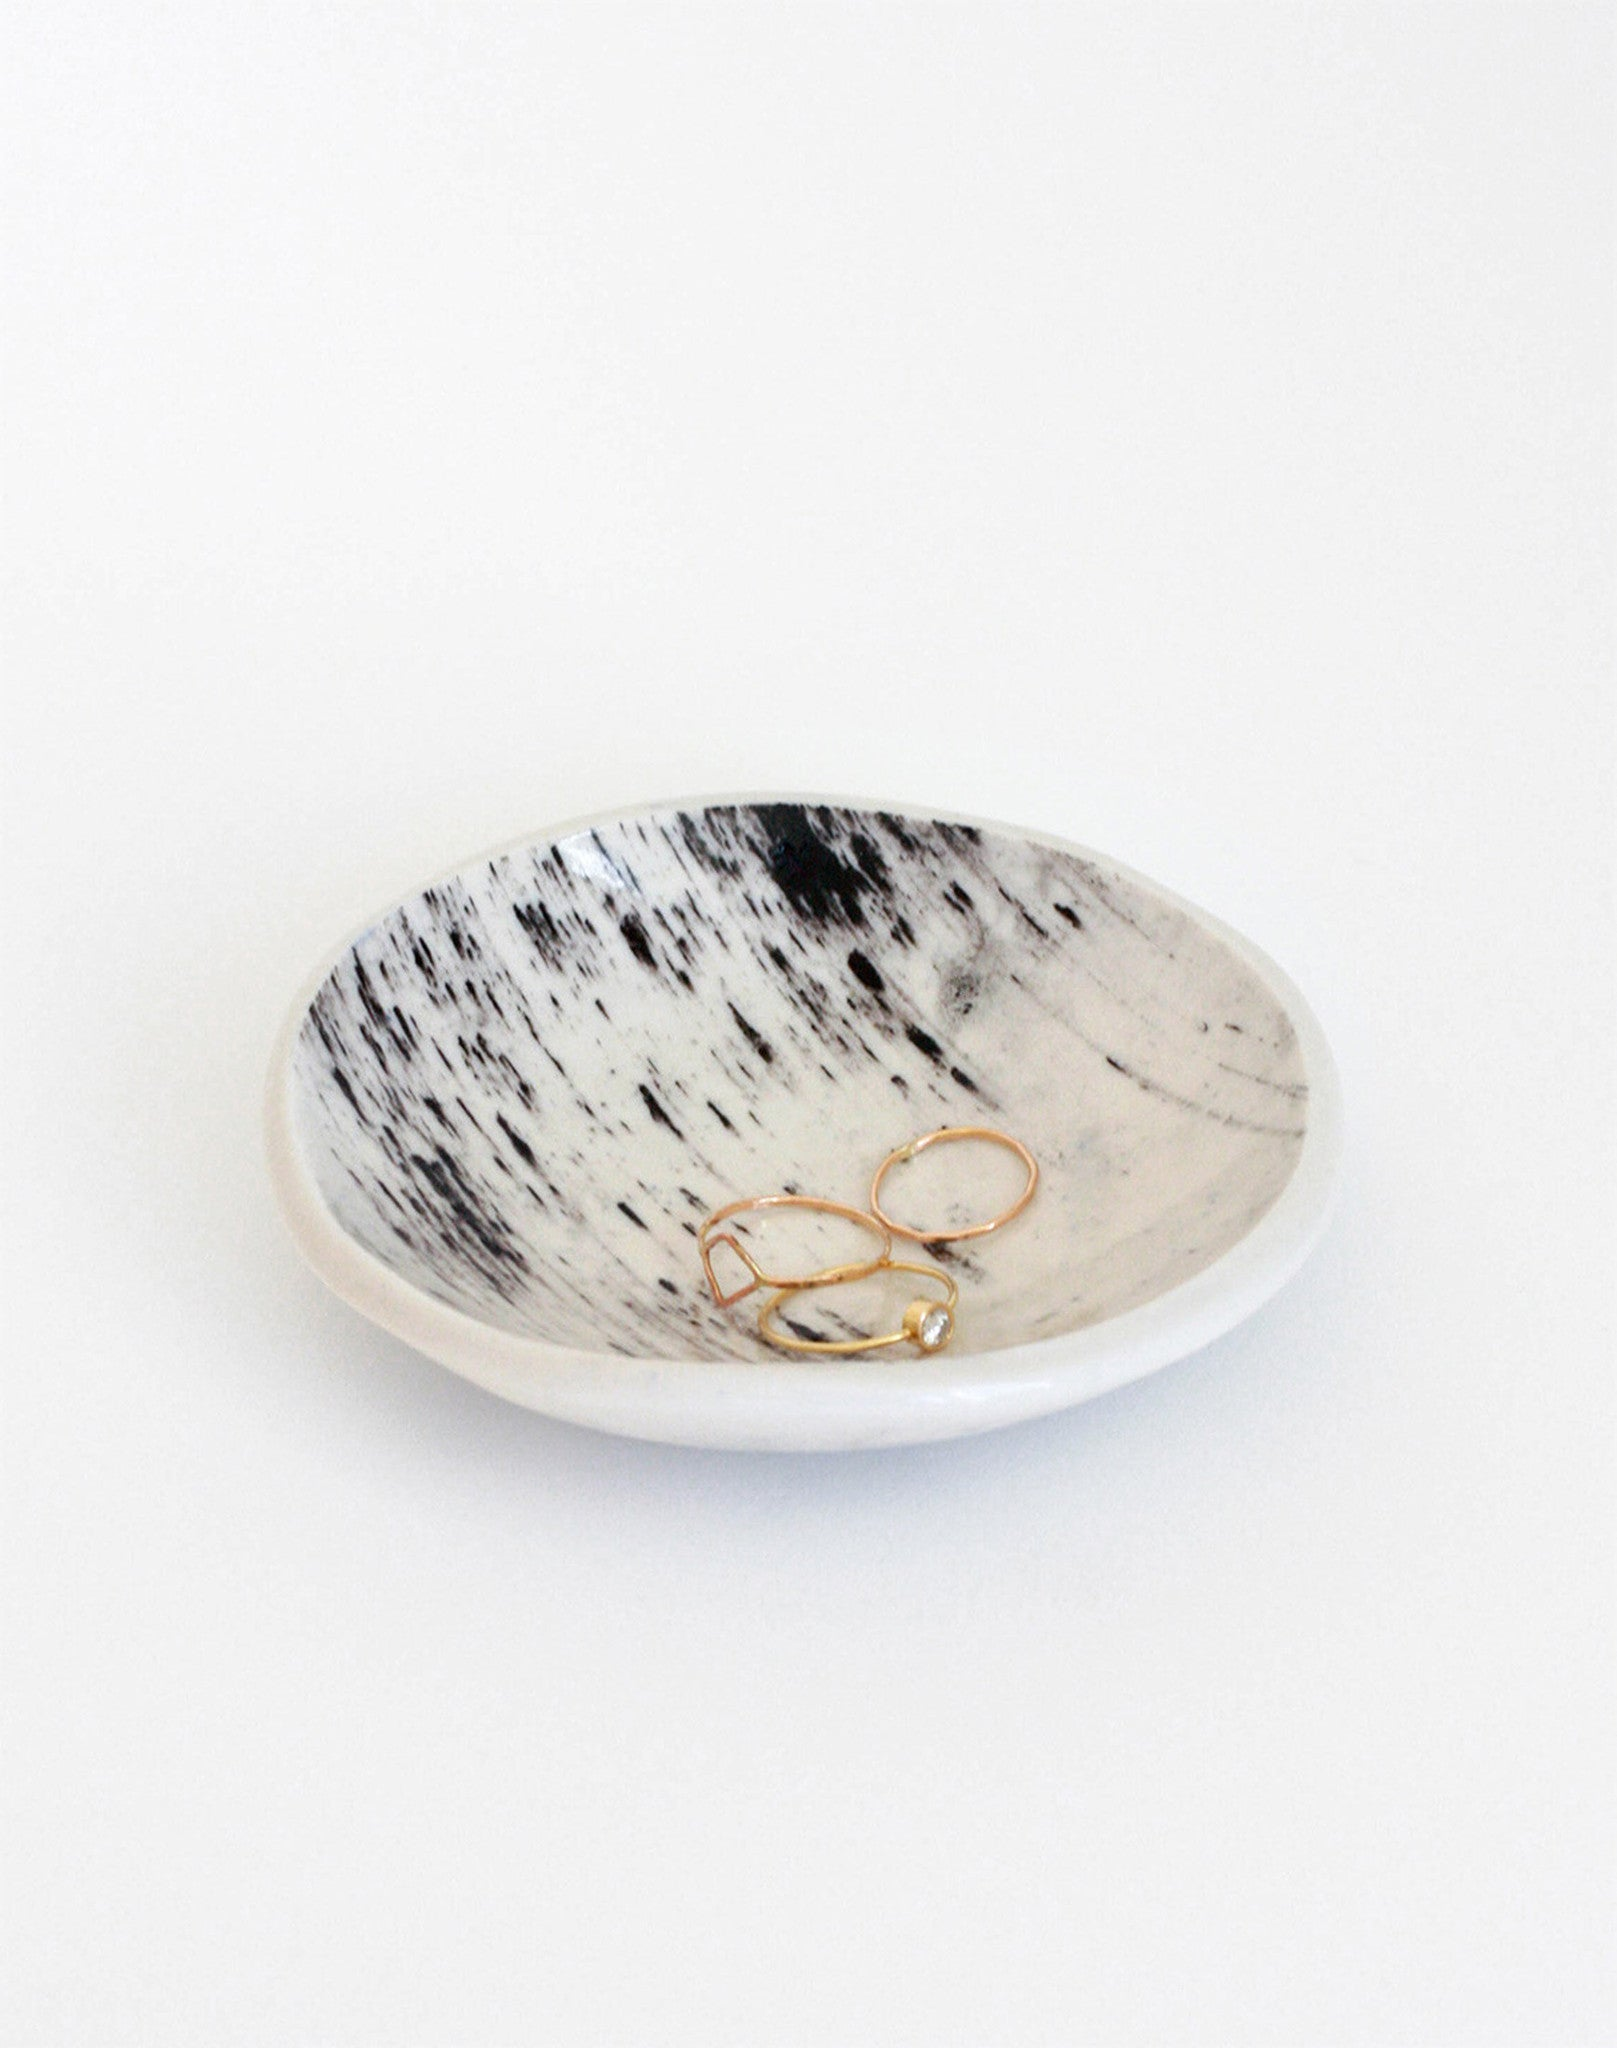 Ring Dish - Black